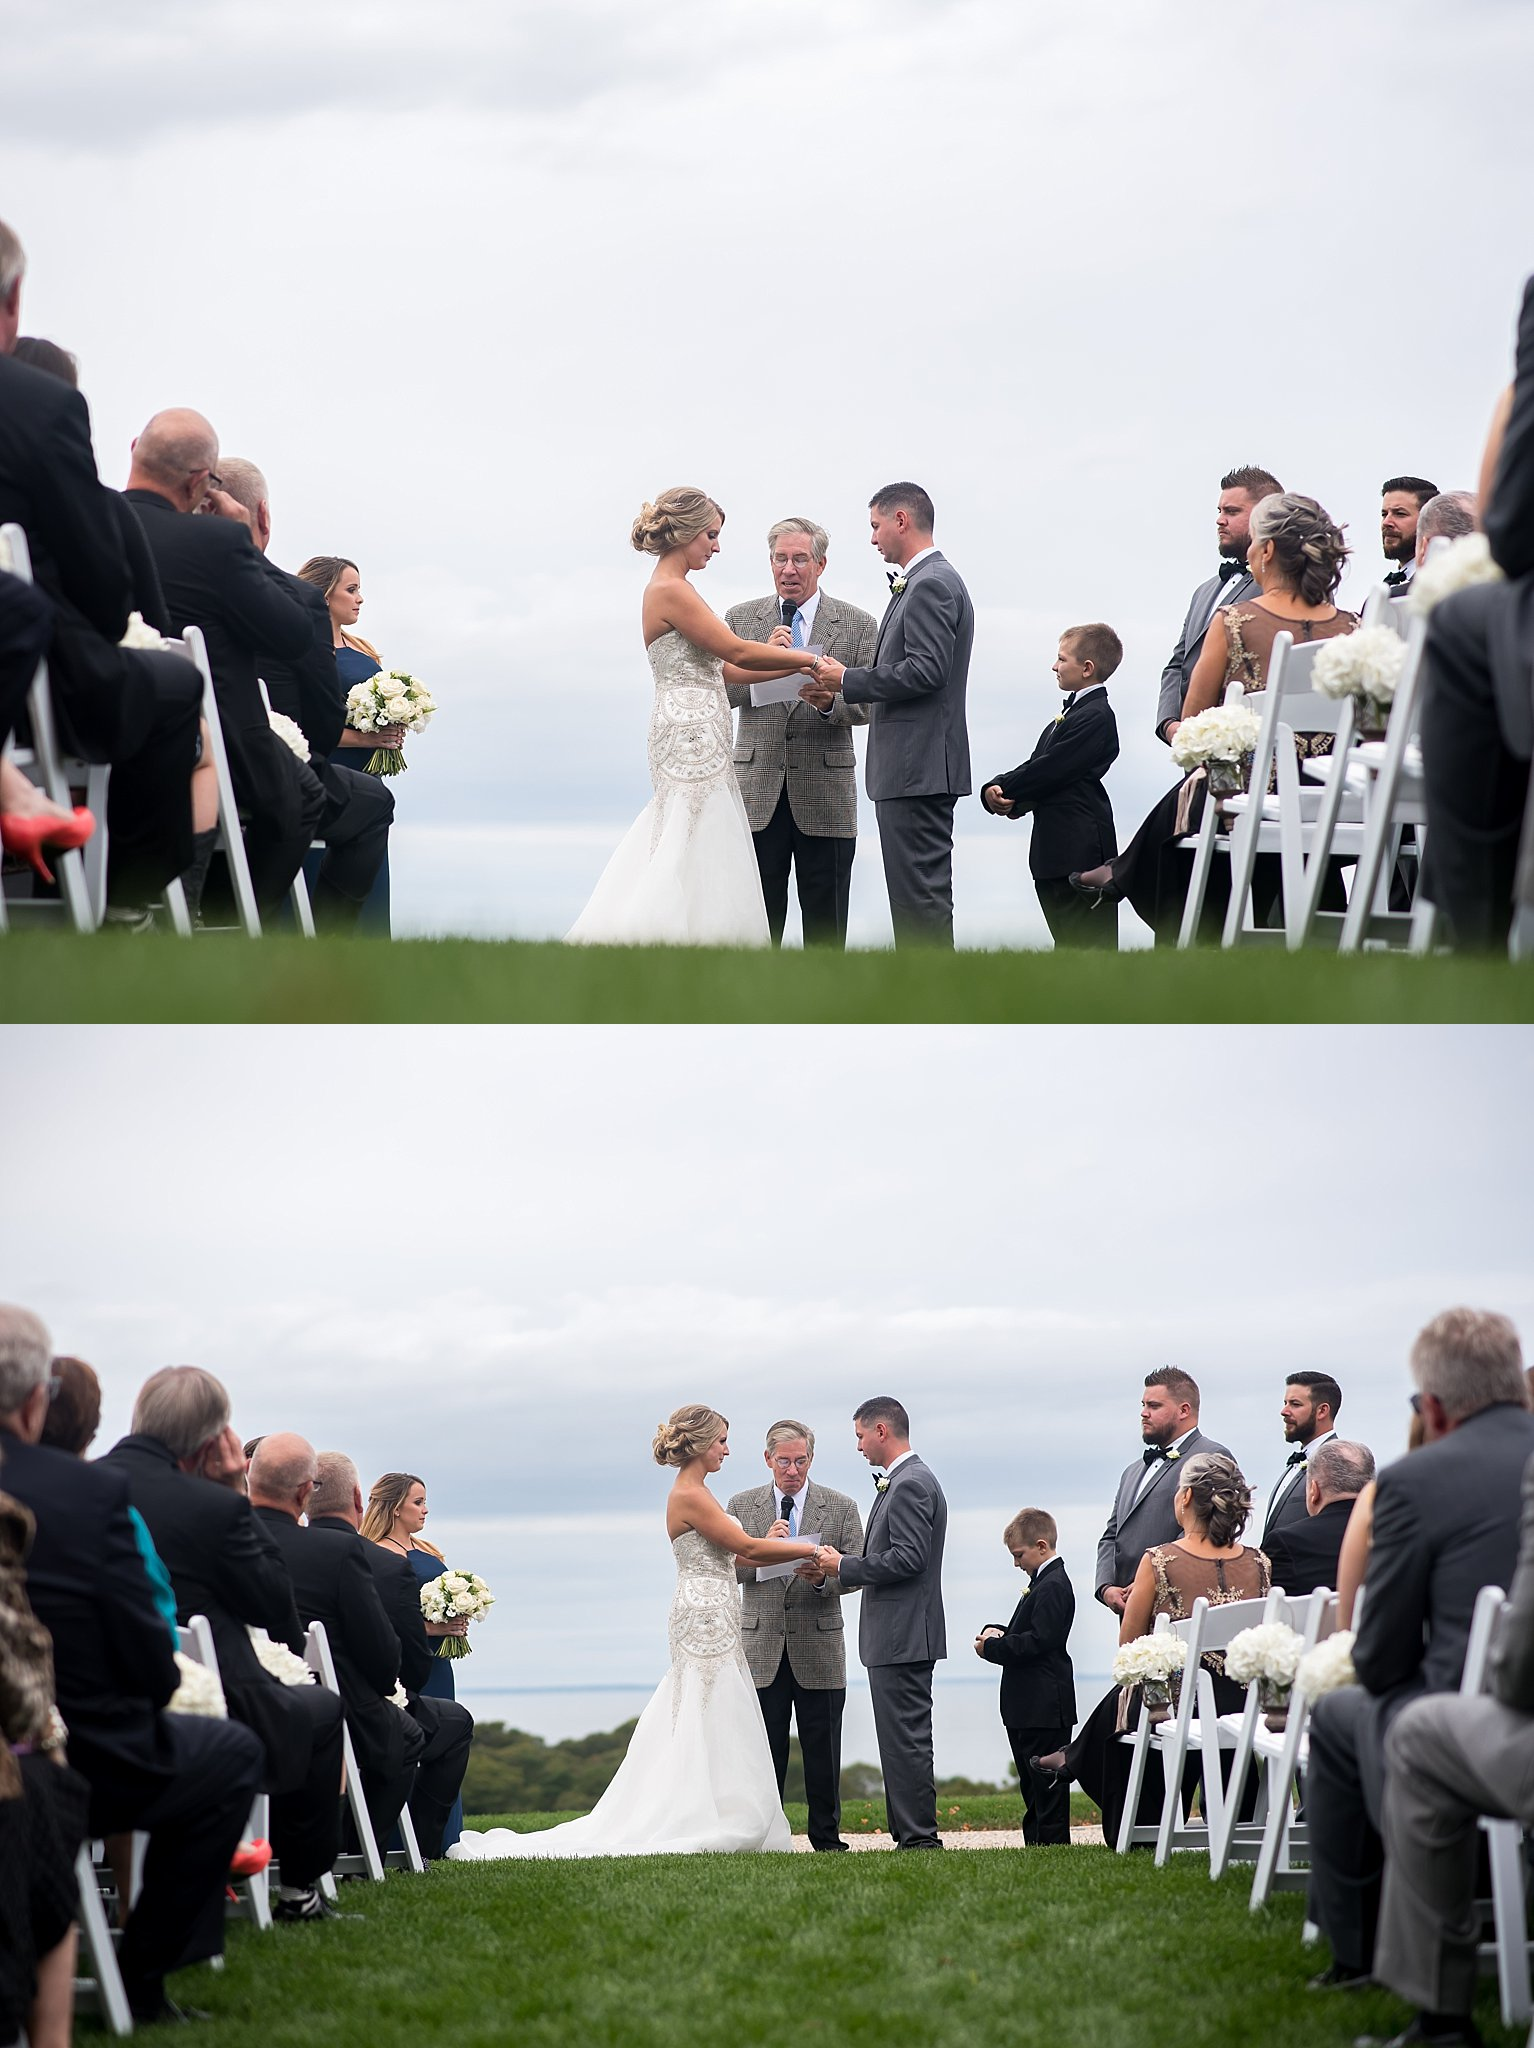 outdoor wedding ceremony in falmouth ma.jpg